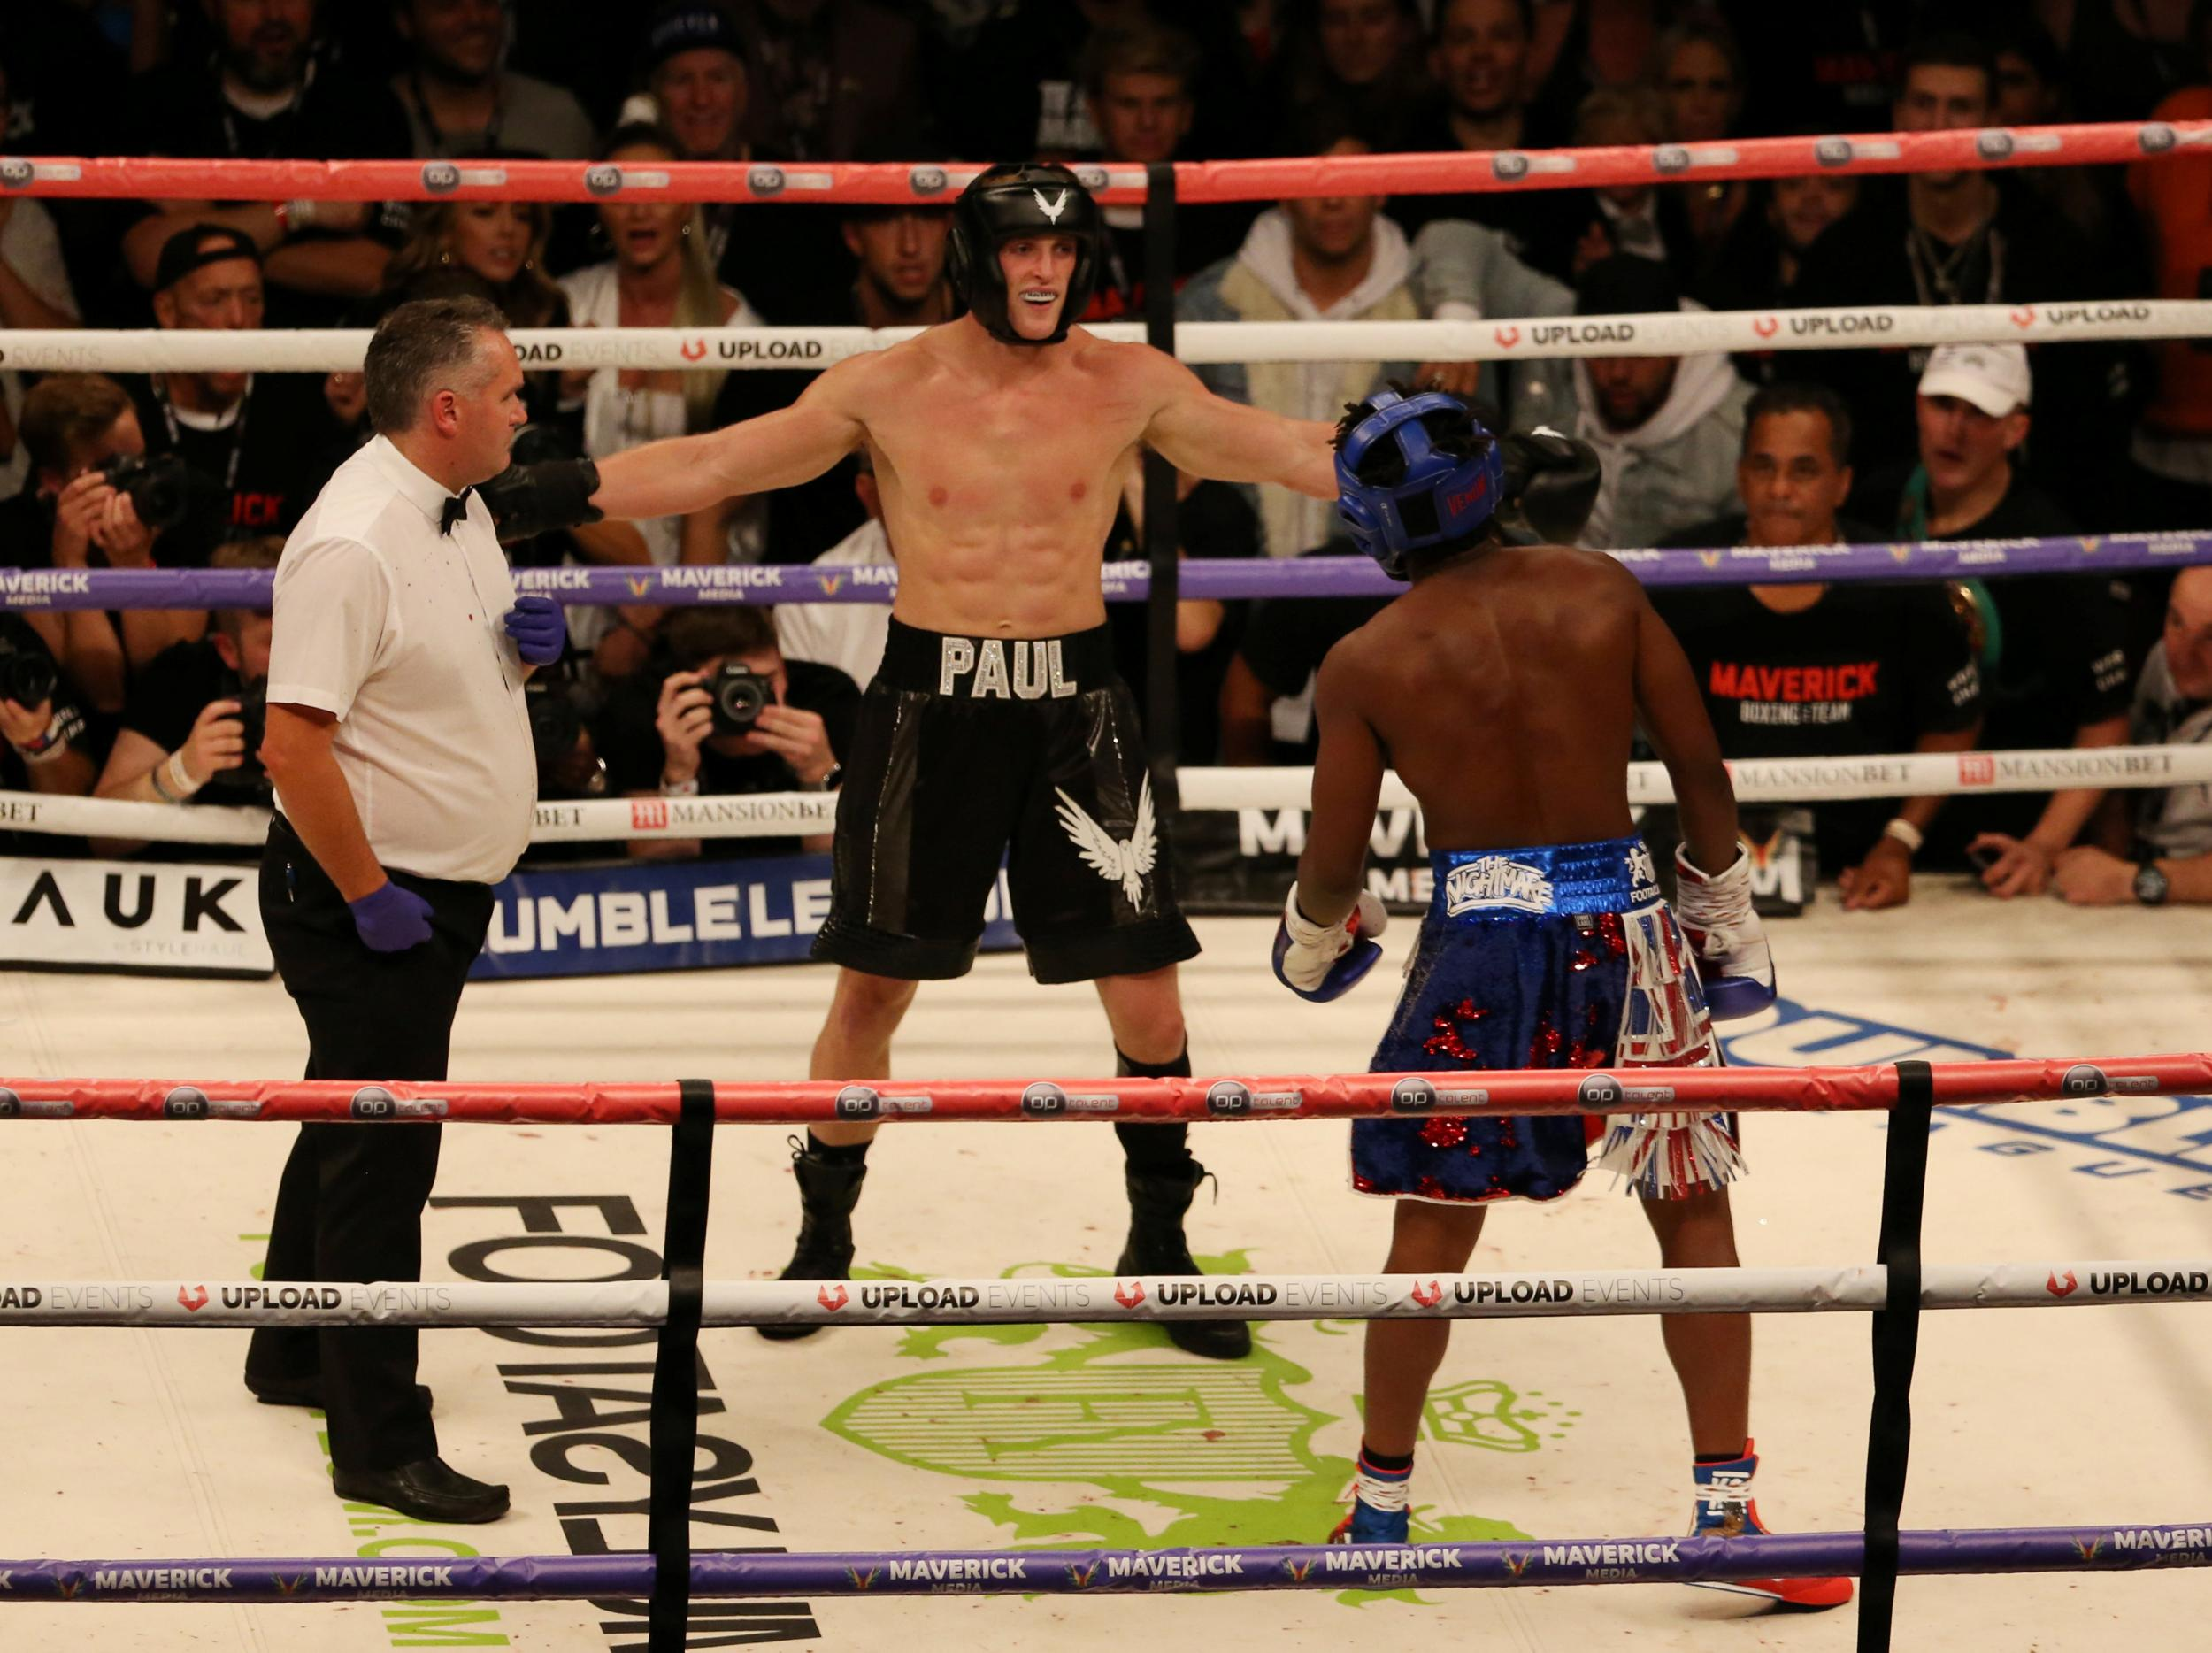 Boxing - latest news, breaking stories and comment - The